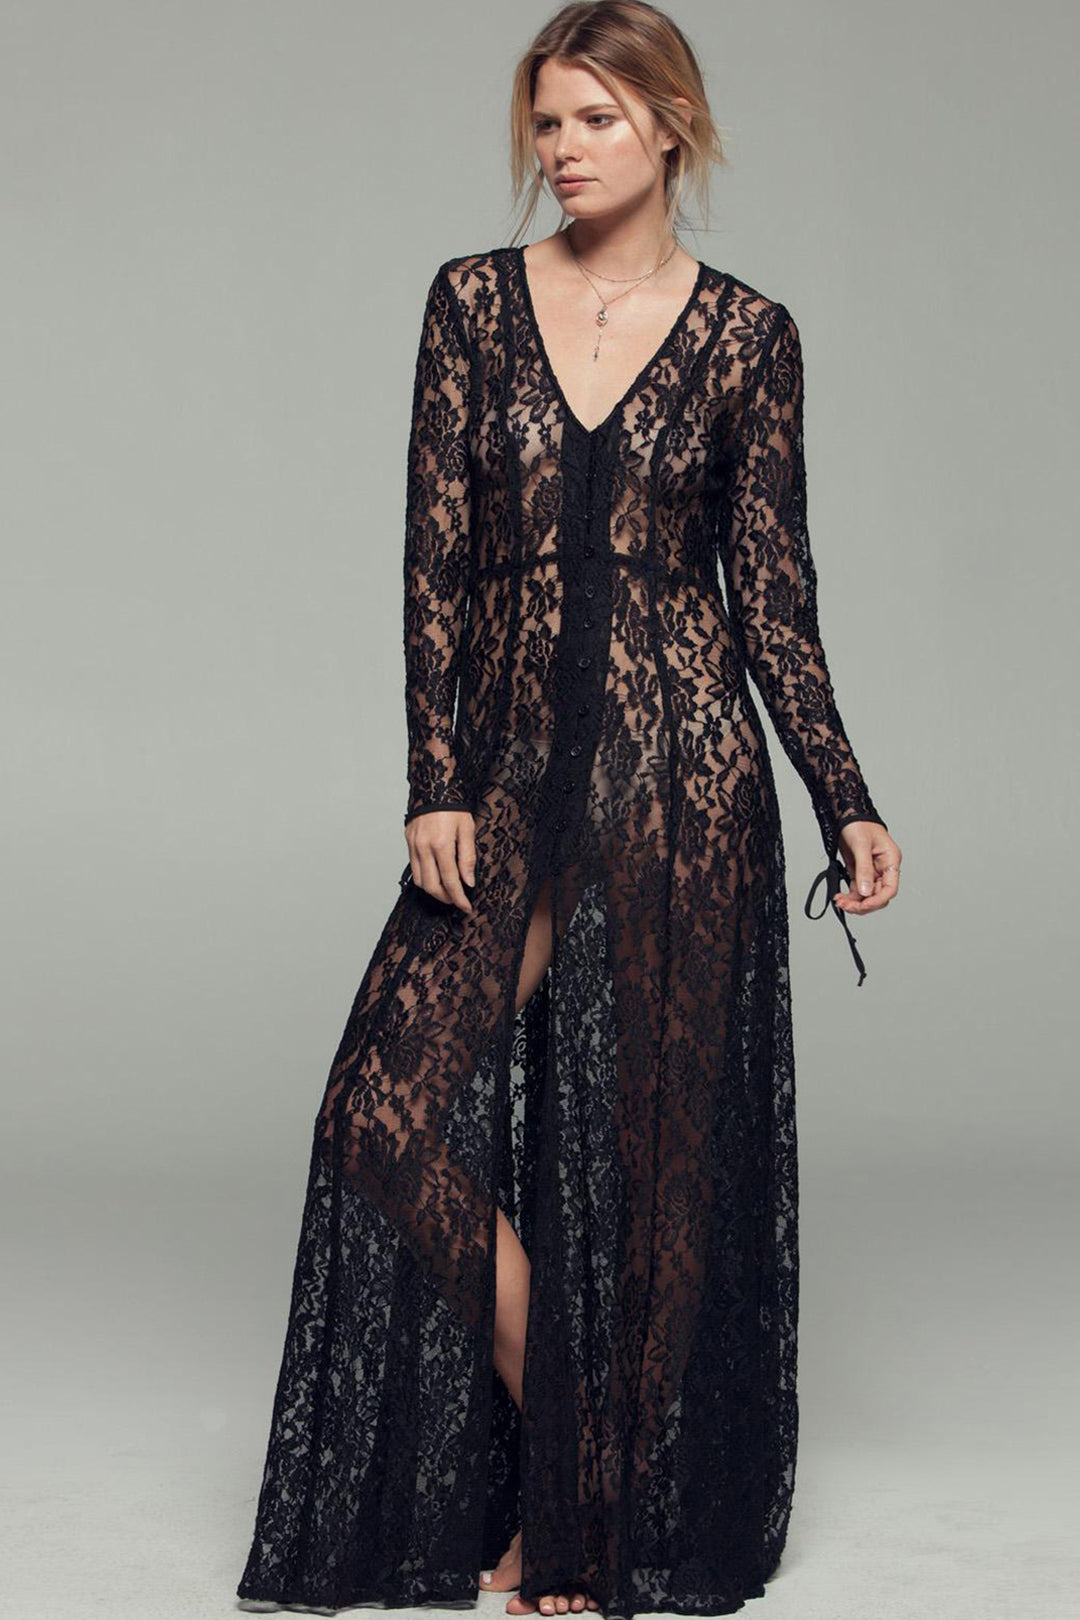 Gypsy Nights Black Lace Sheer Duster Master